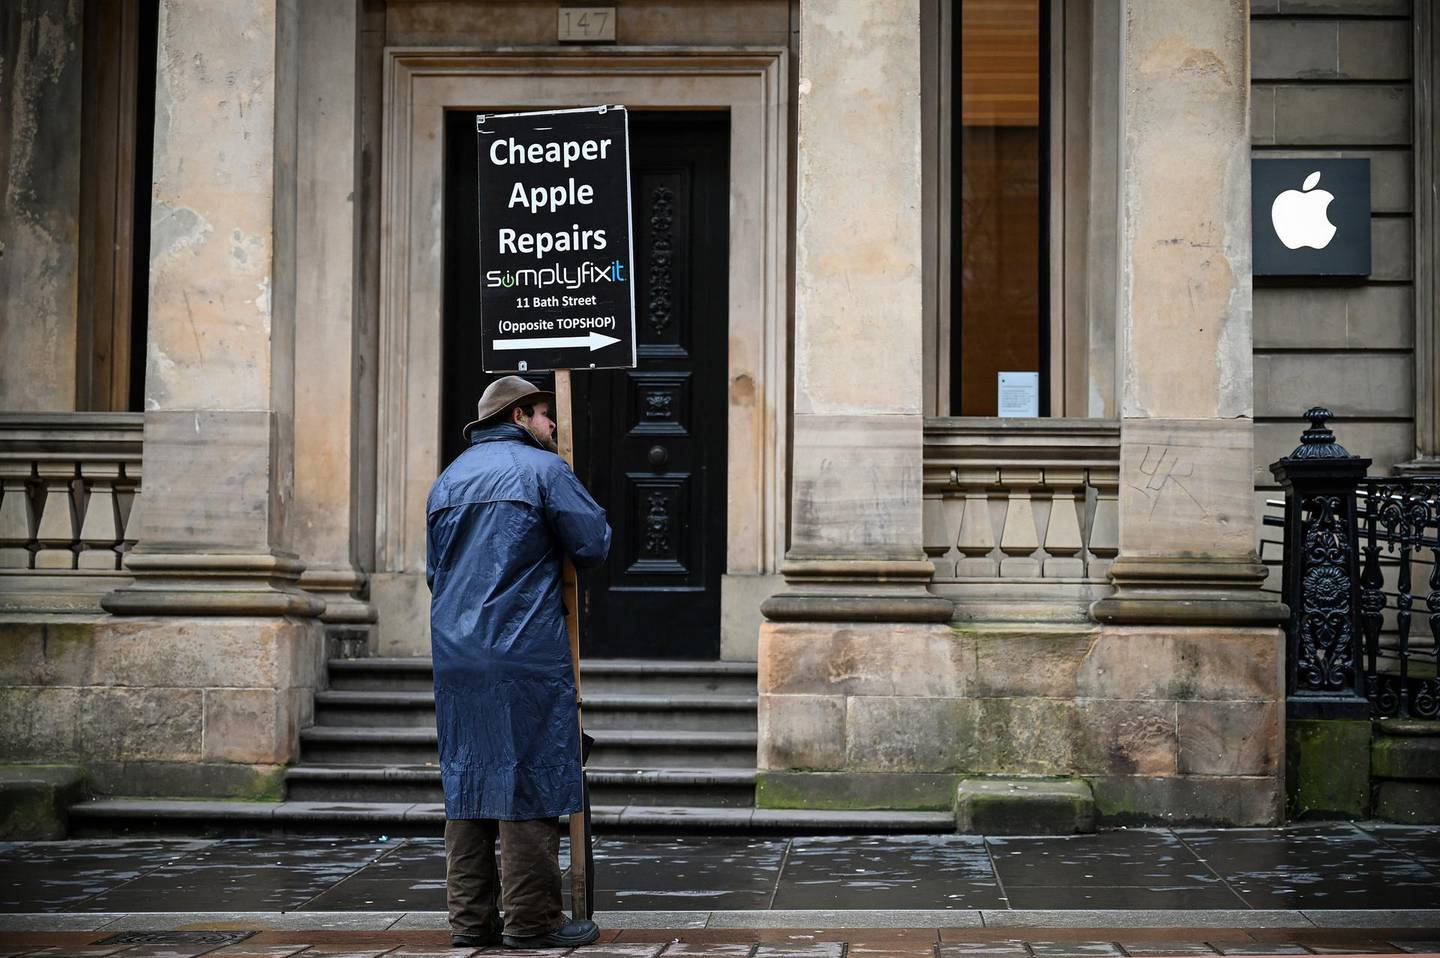 GLASGOW,  - MARCH 18: A man stands outside the closed Apple Mac store in Buchanan Street on March 18, 2020 in Glasgow, Scotland. People have been asked to work from home and socially distance themselves due to the coronavirus (COVID-19) pandemic. (Photo by Jeff J Mitchell/Getty Images)